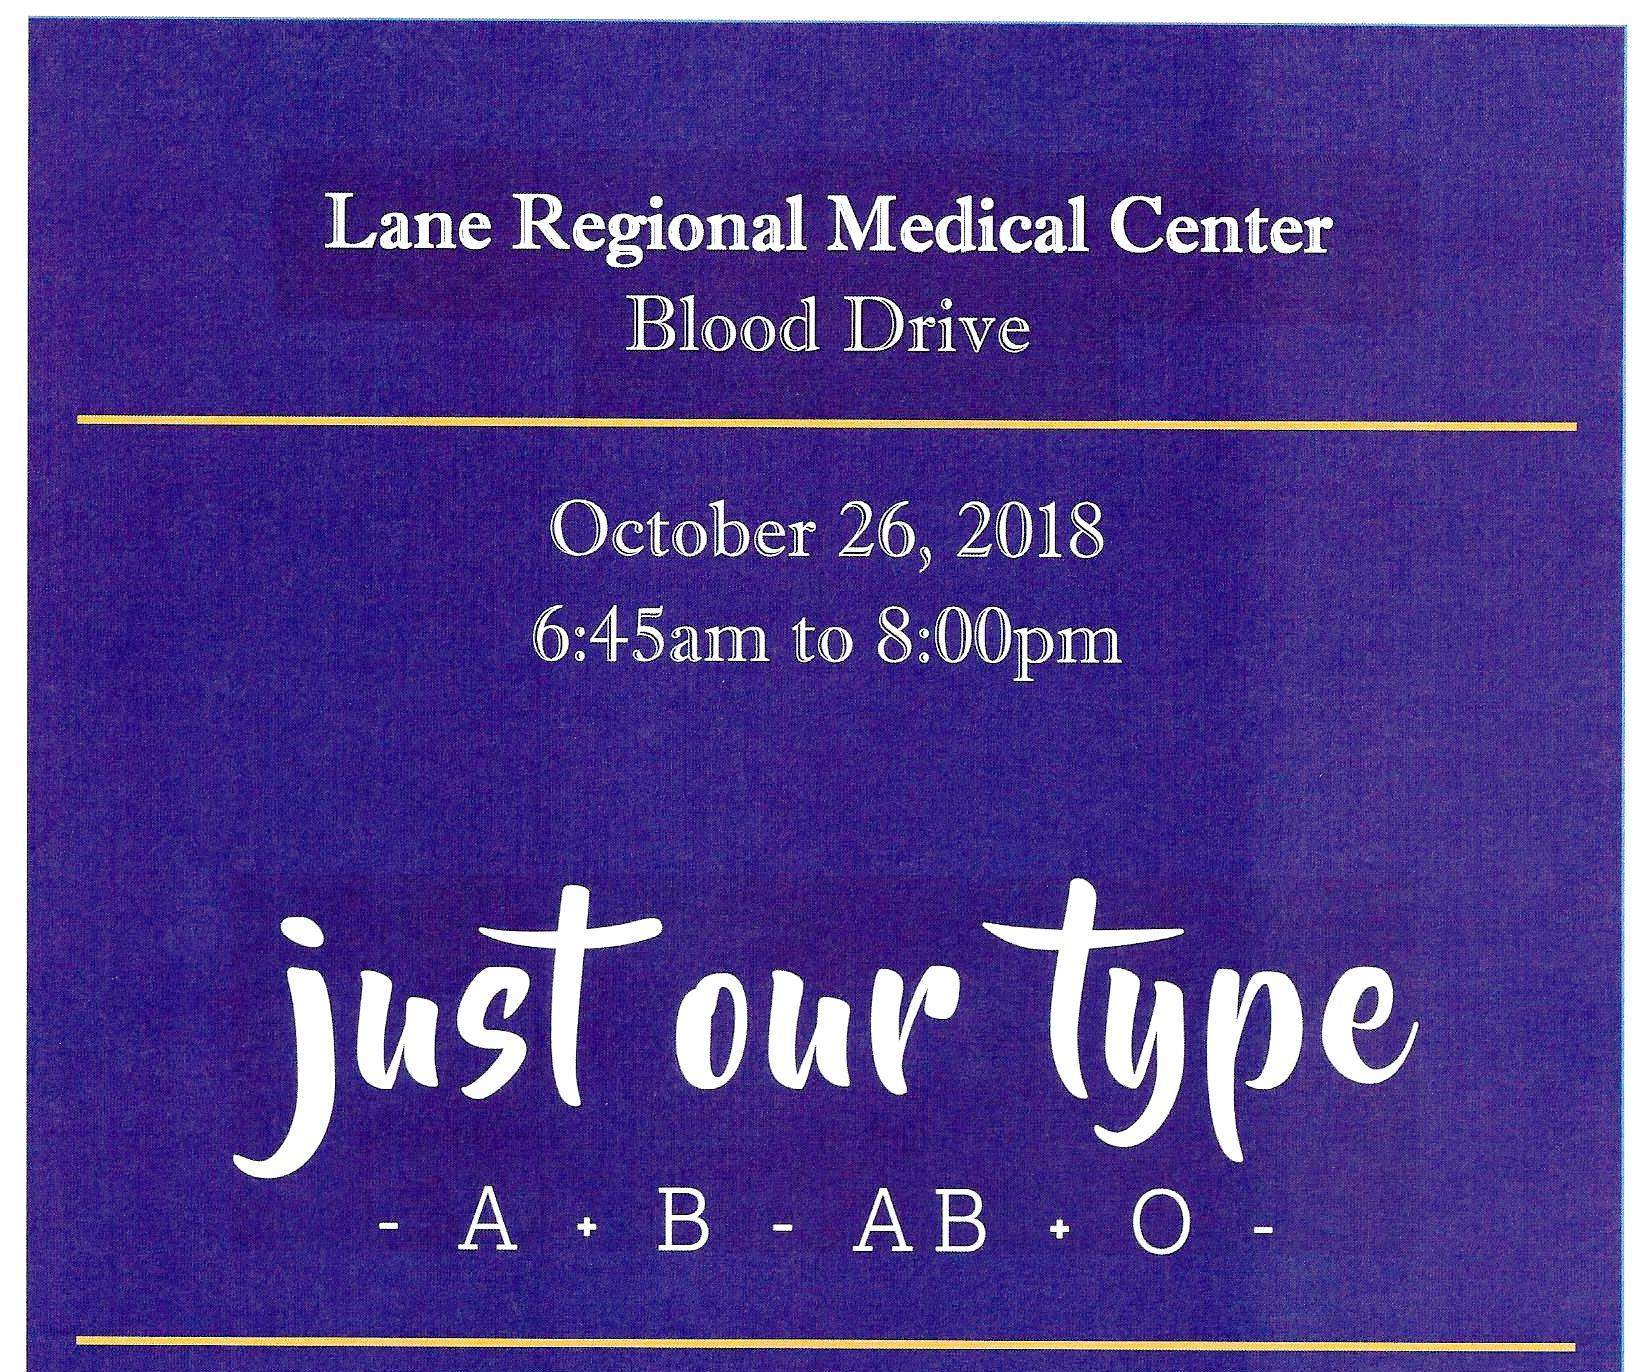 Blood Drive at Lane Regional Medical Center October 26